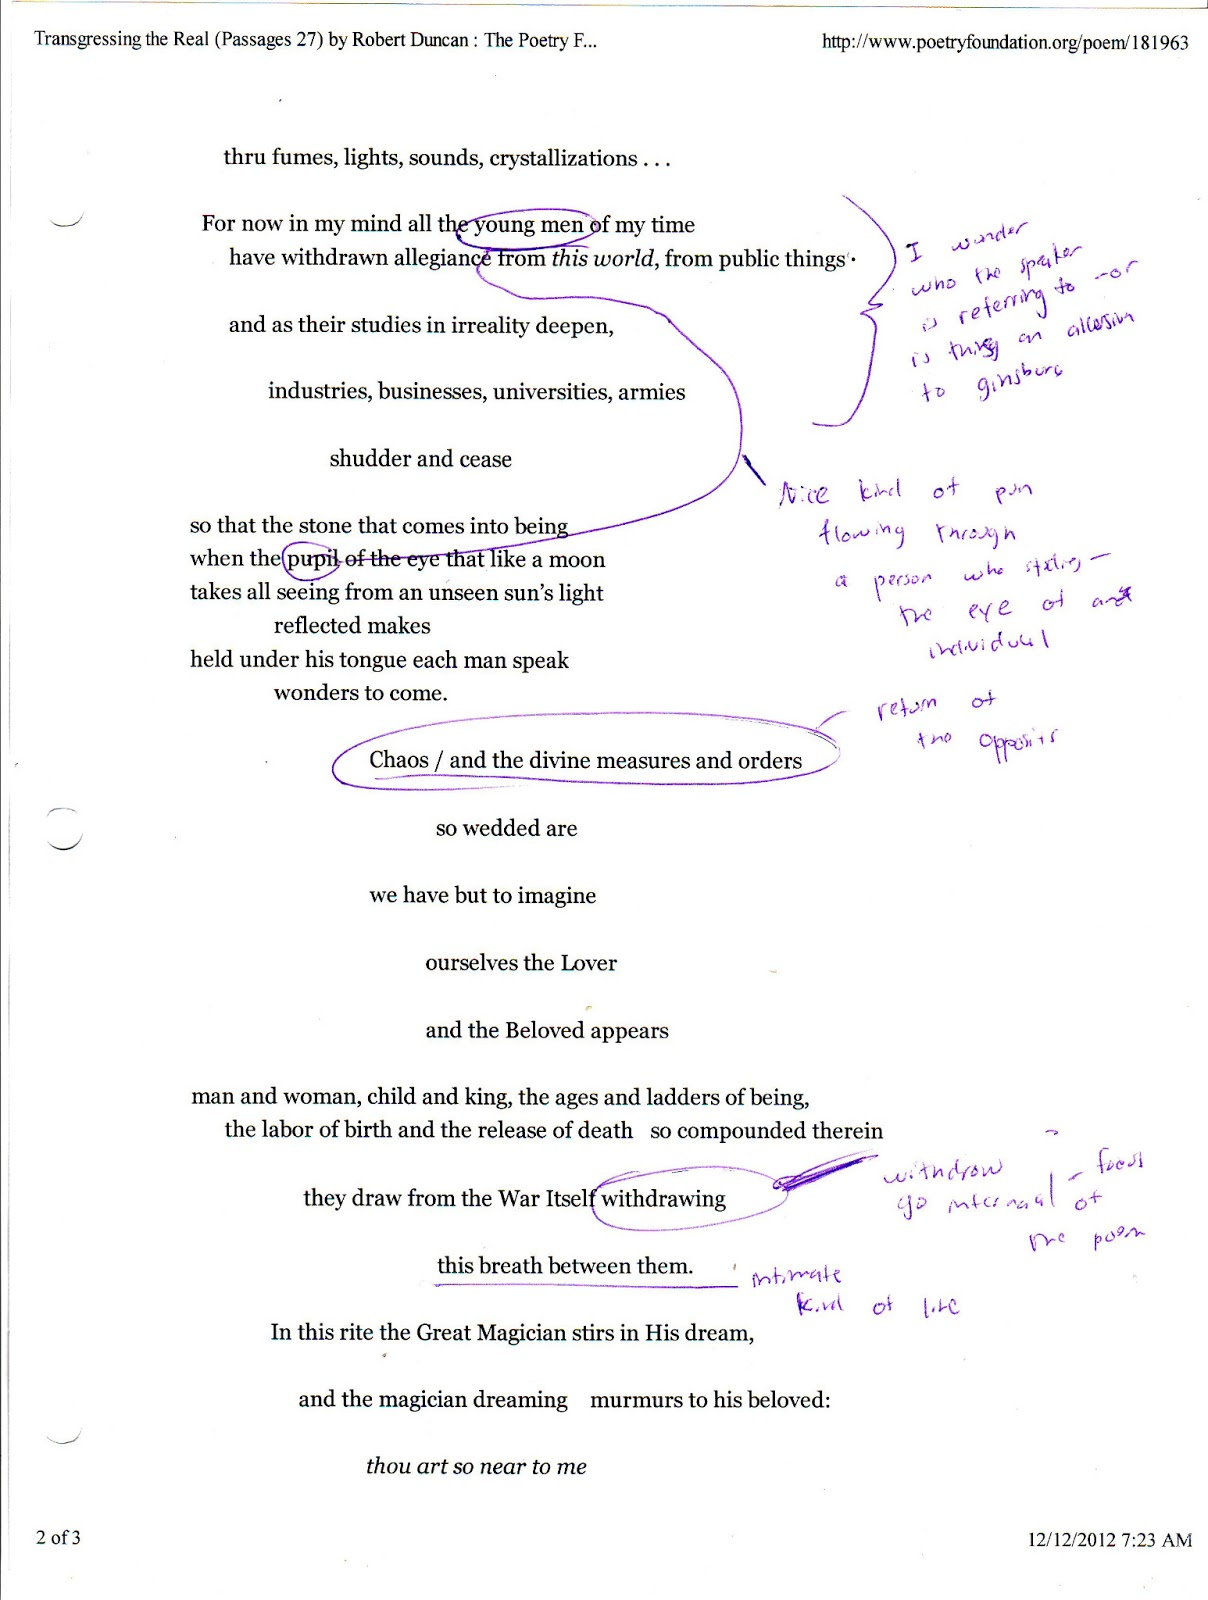 Analysis of the poem The Prophet